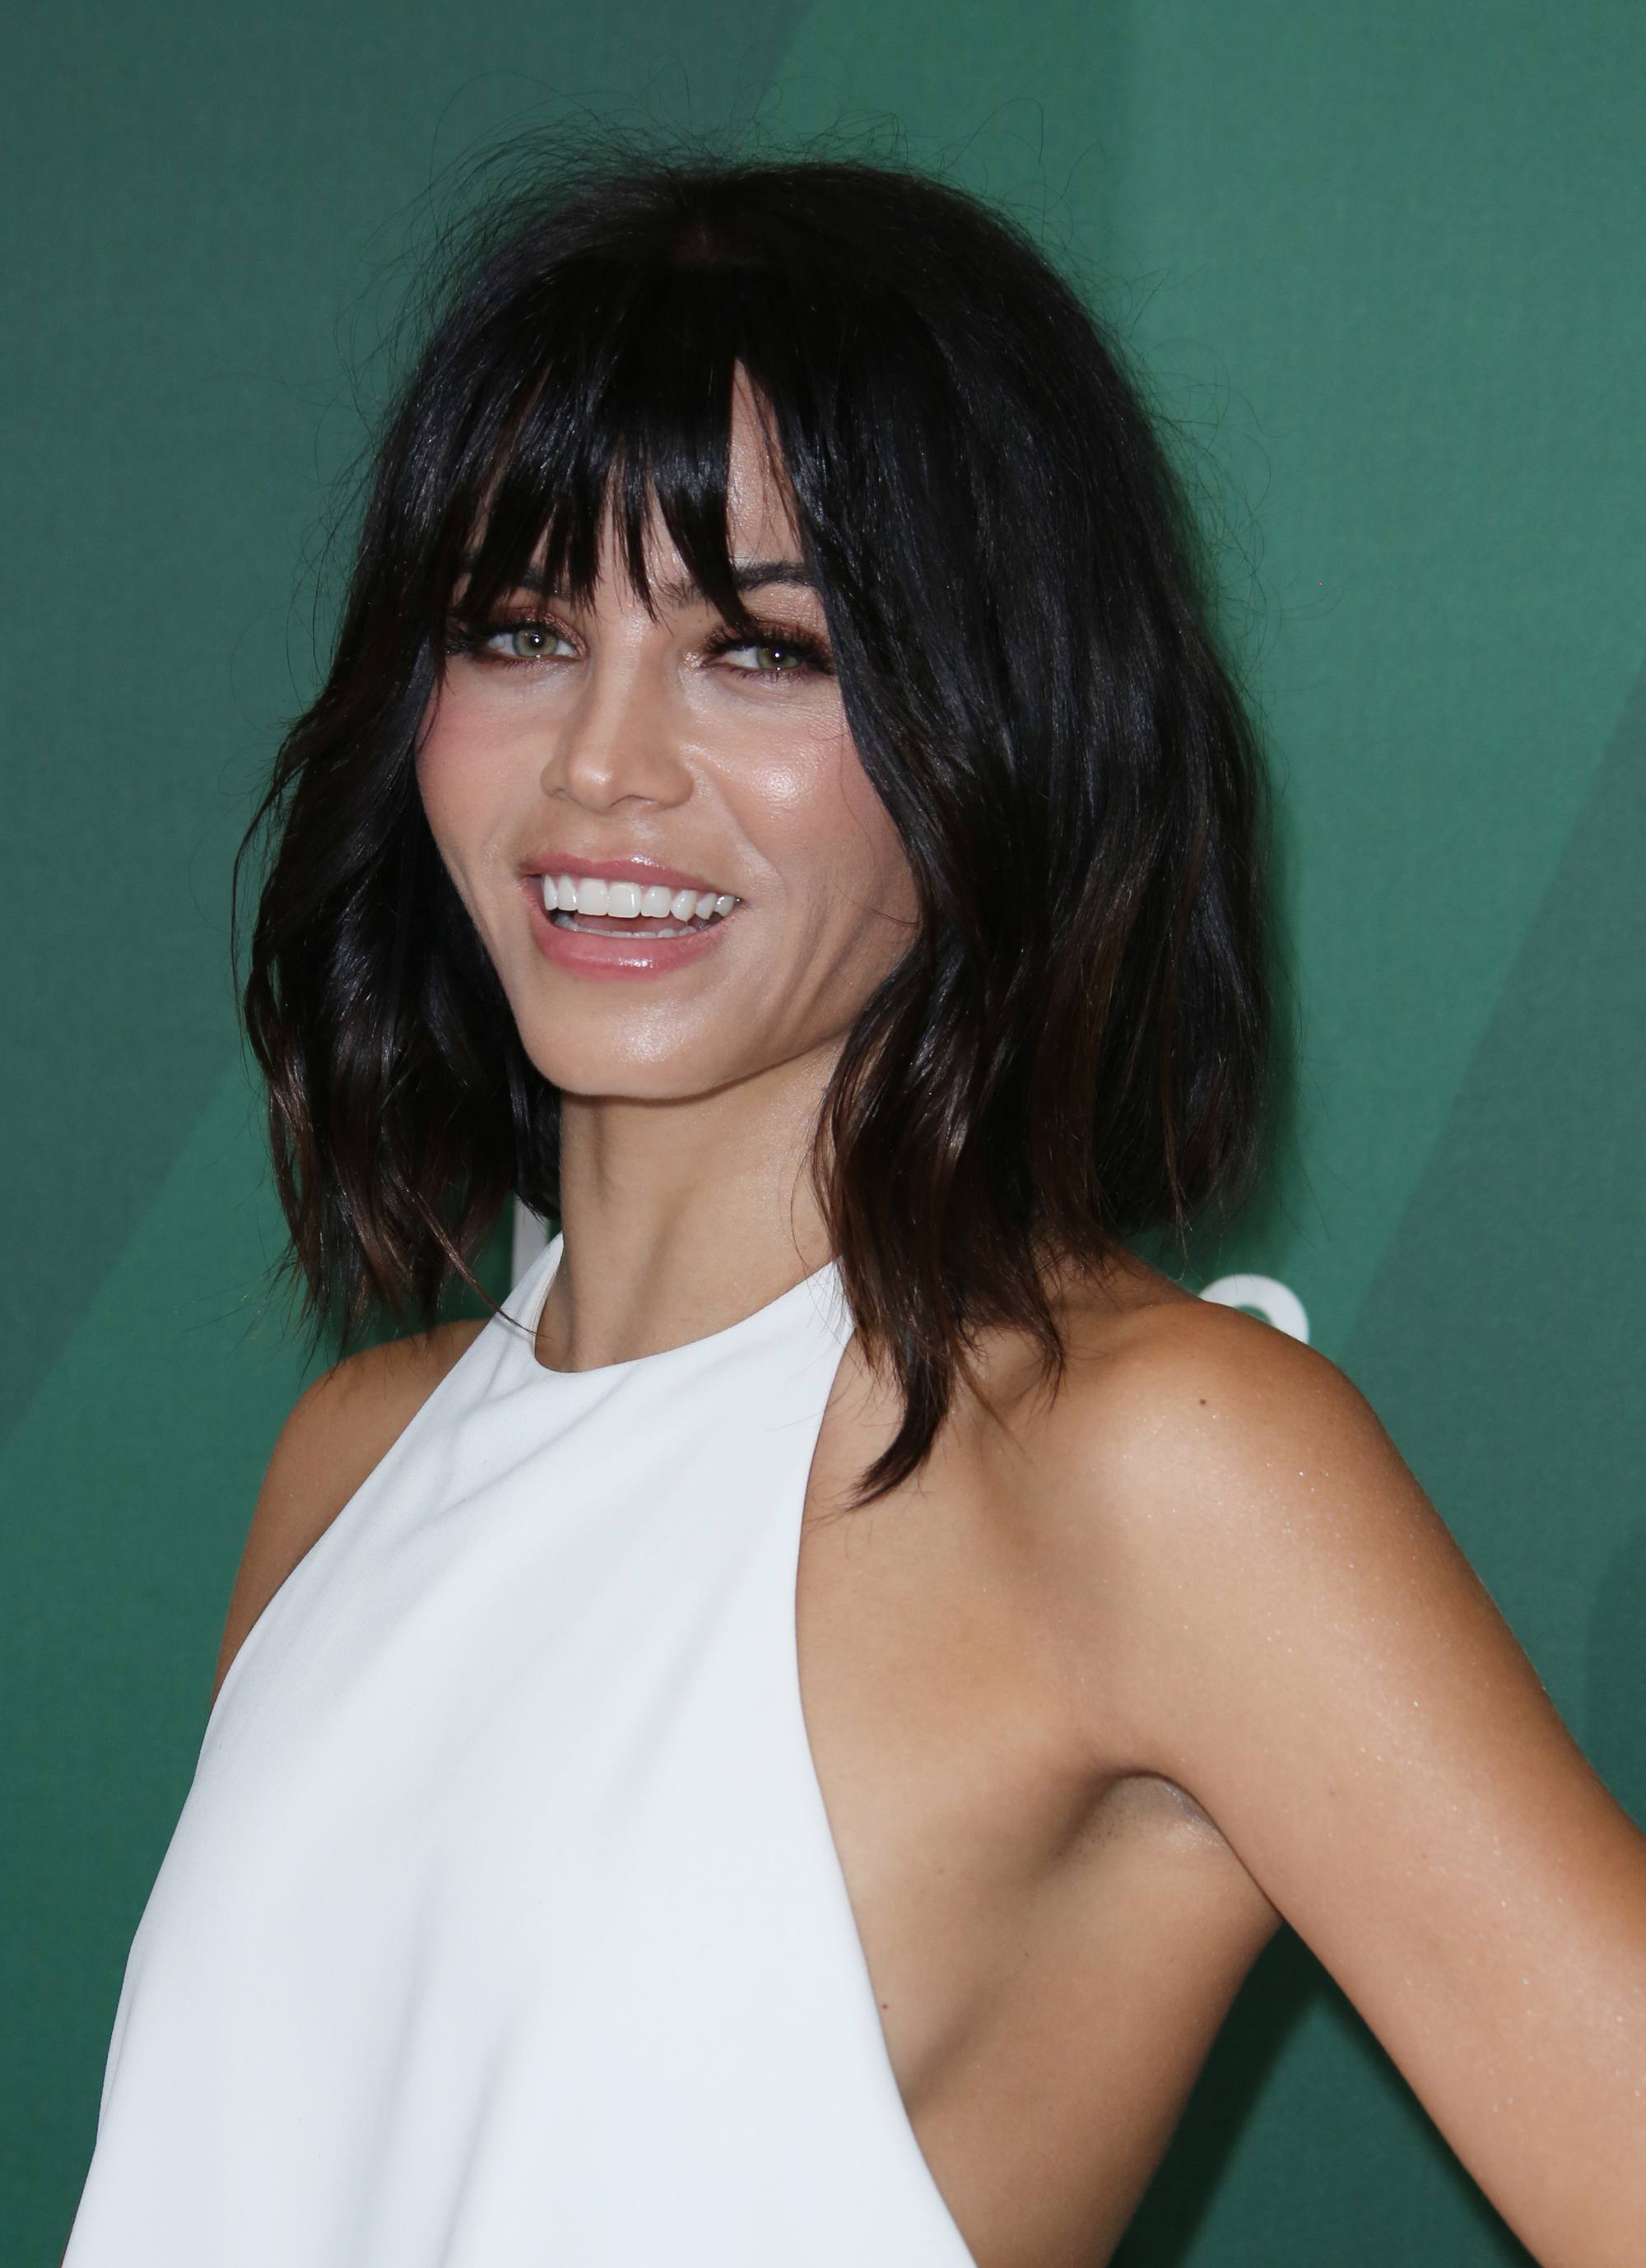 hairstyles for fine curly hair: jenna dewan with her dark hair in a shag cut long bob with peekaboo fringe